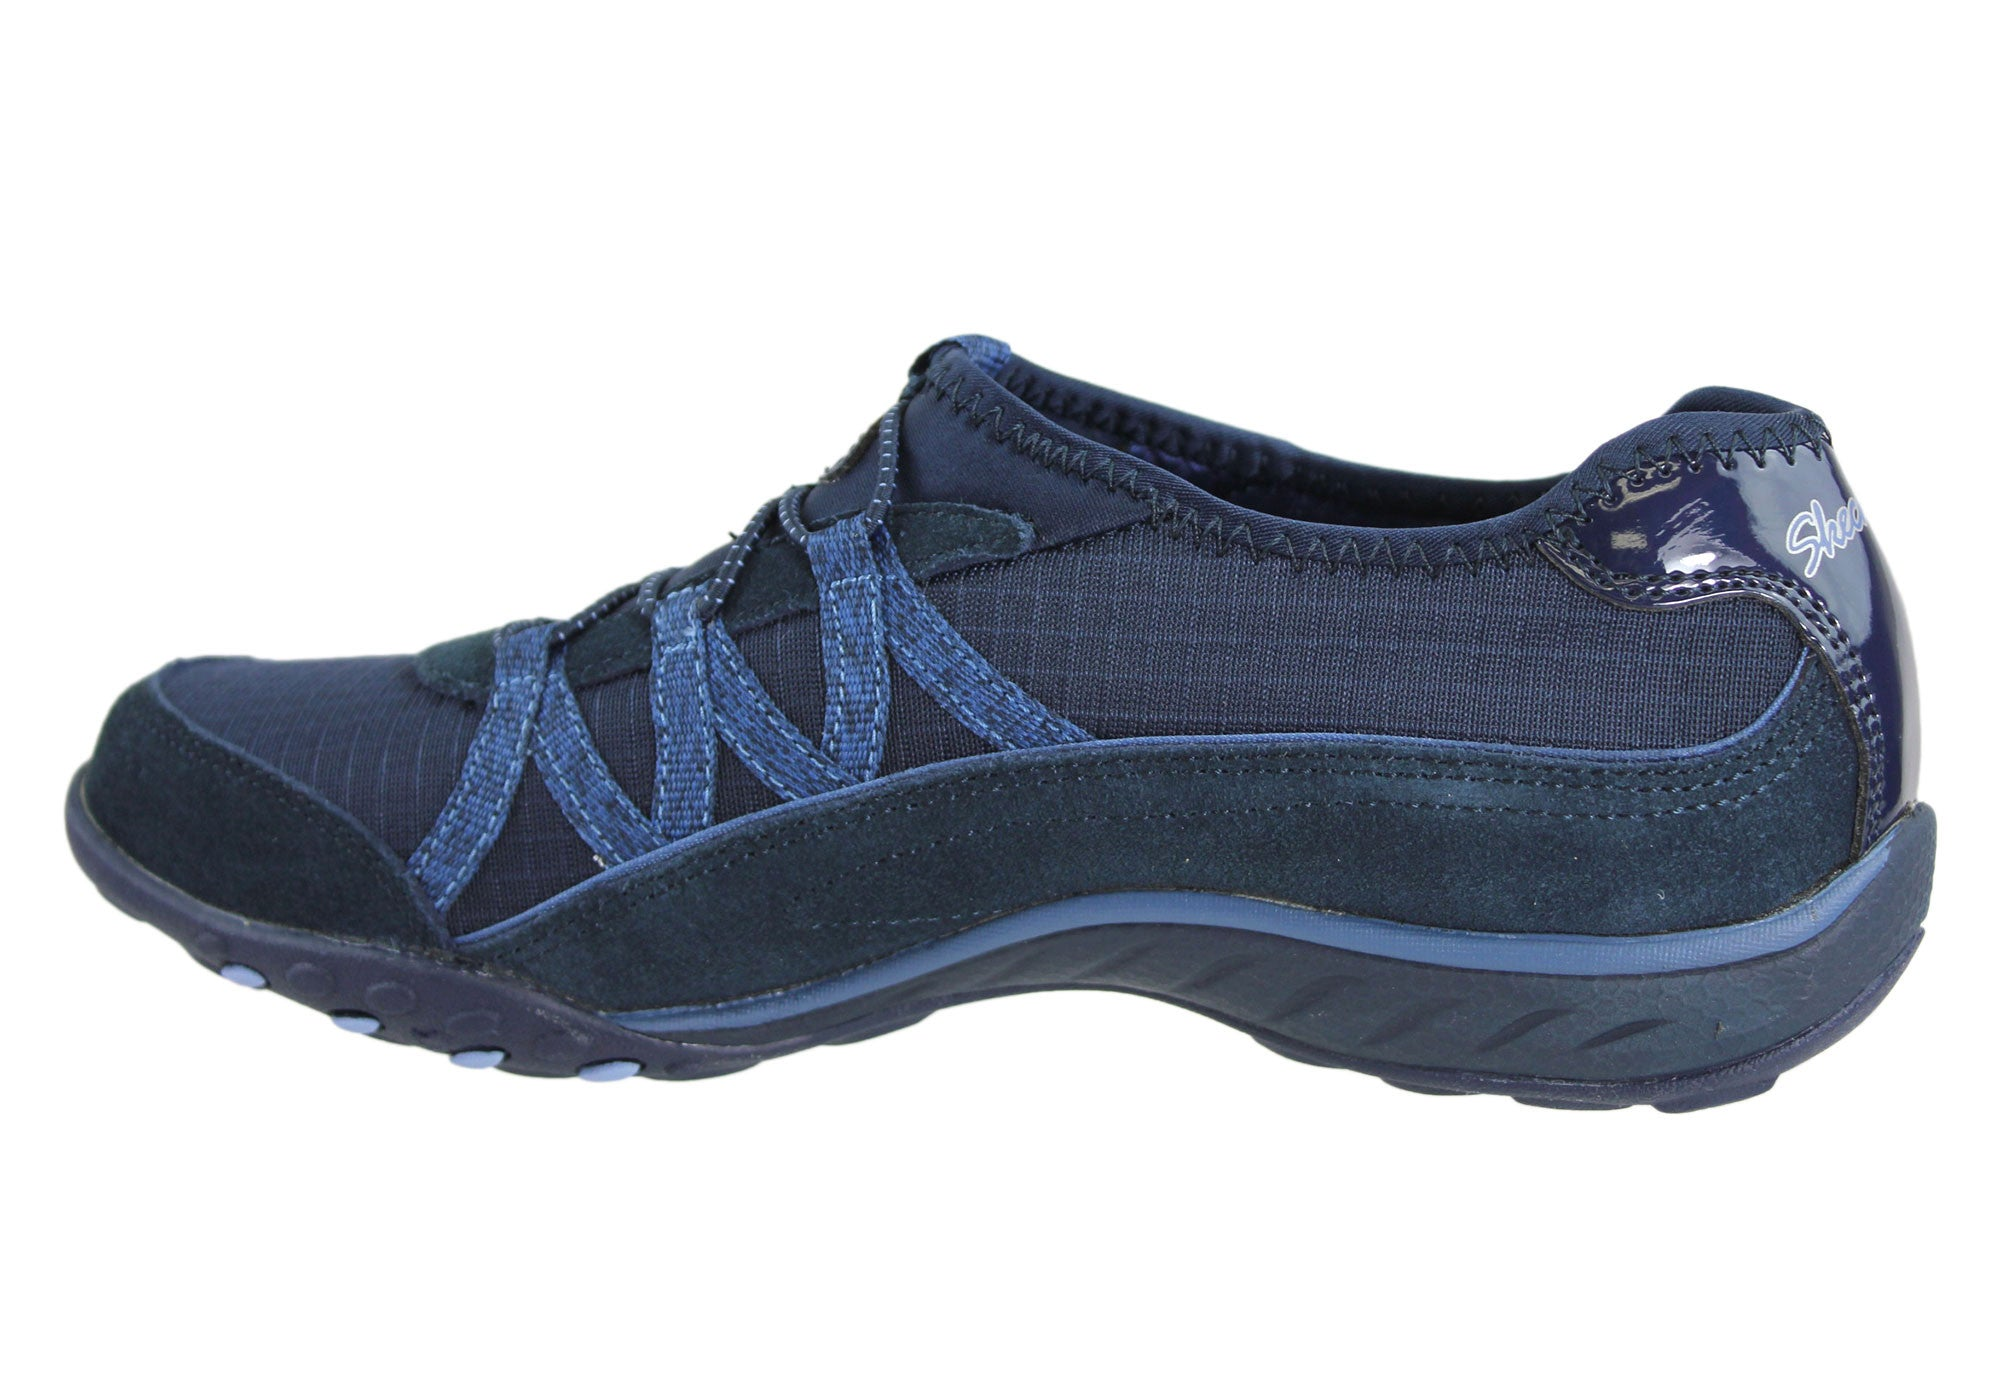 Skechers Breathe Easy Big Break Womens Memory Foam Shoes